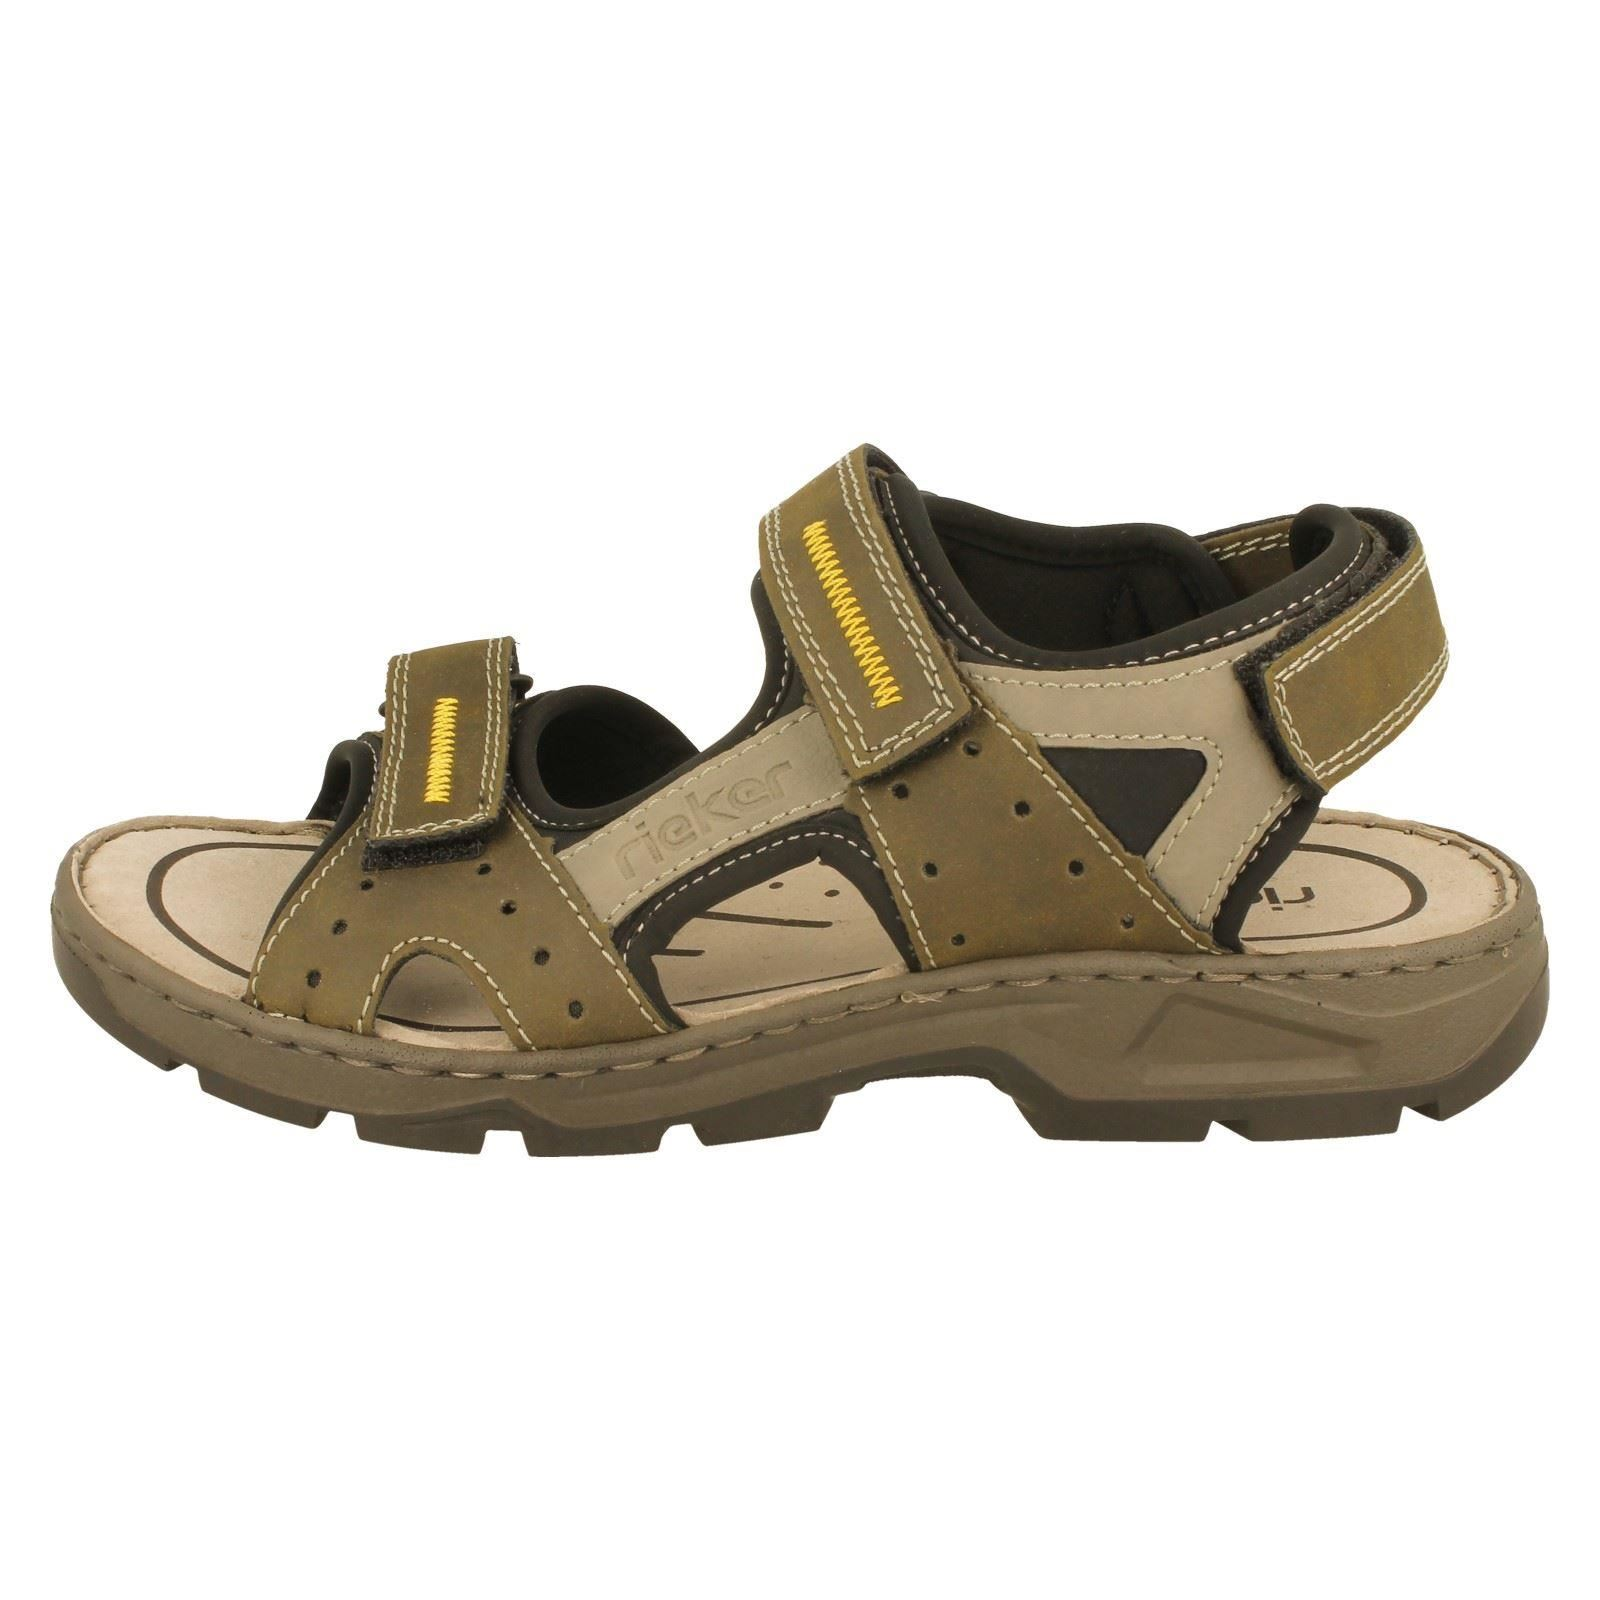 Mens Rieker Sandals The Style 26157-W